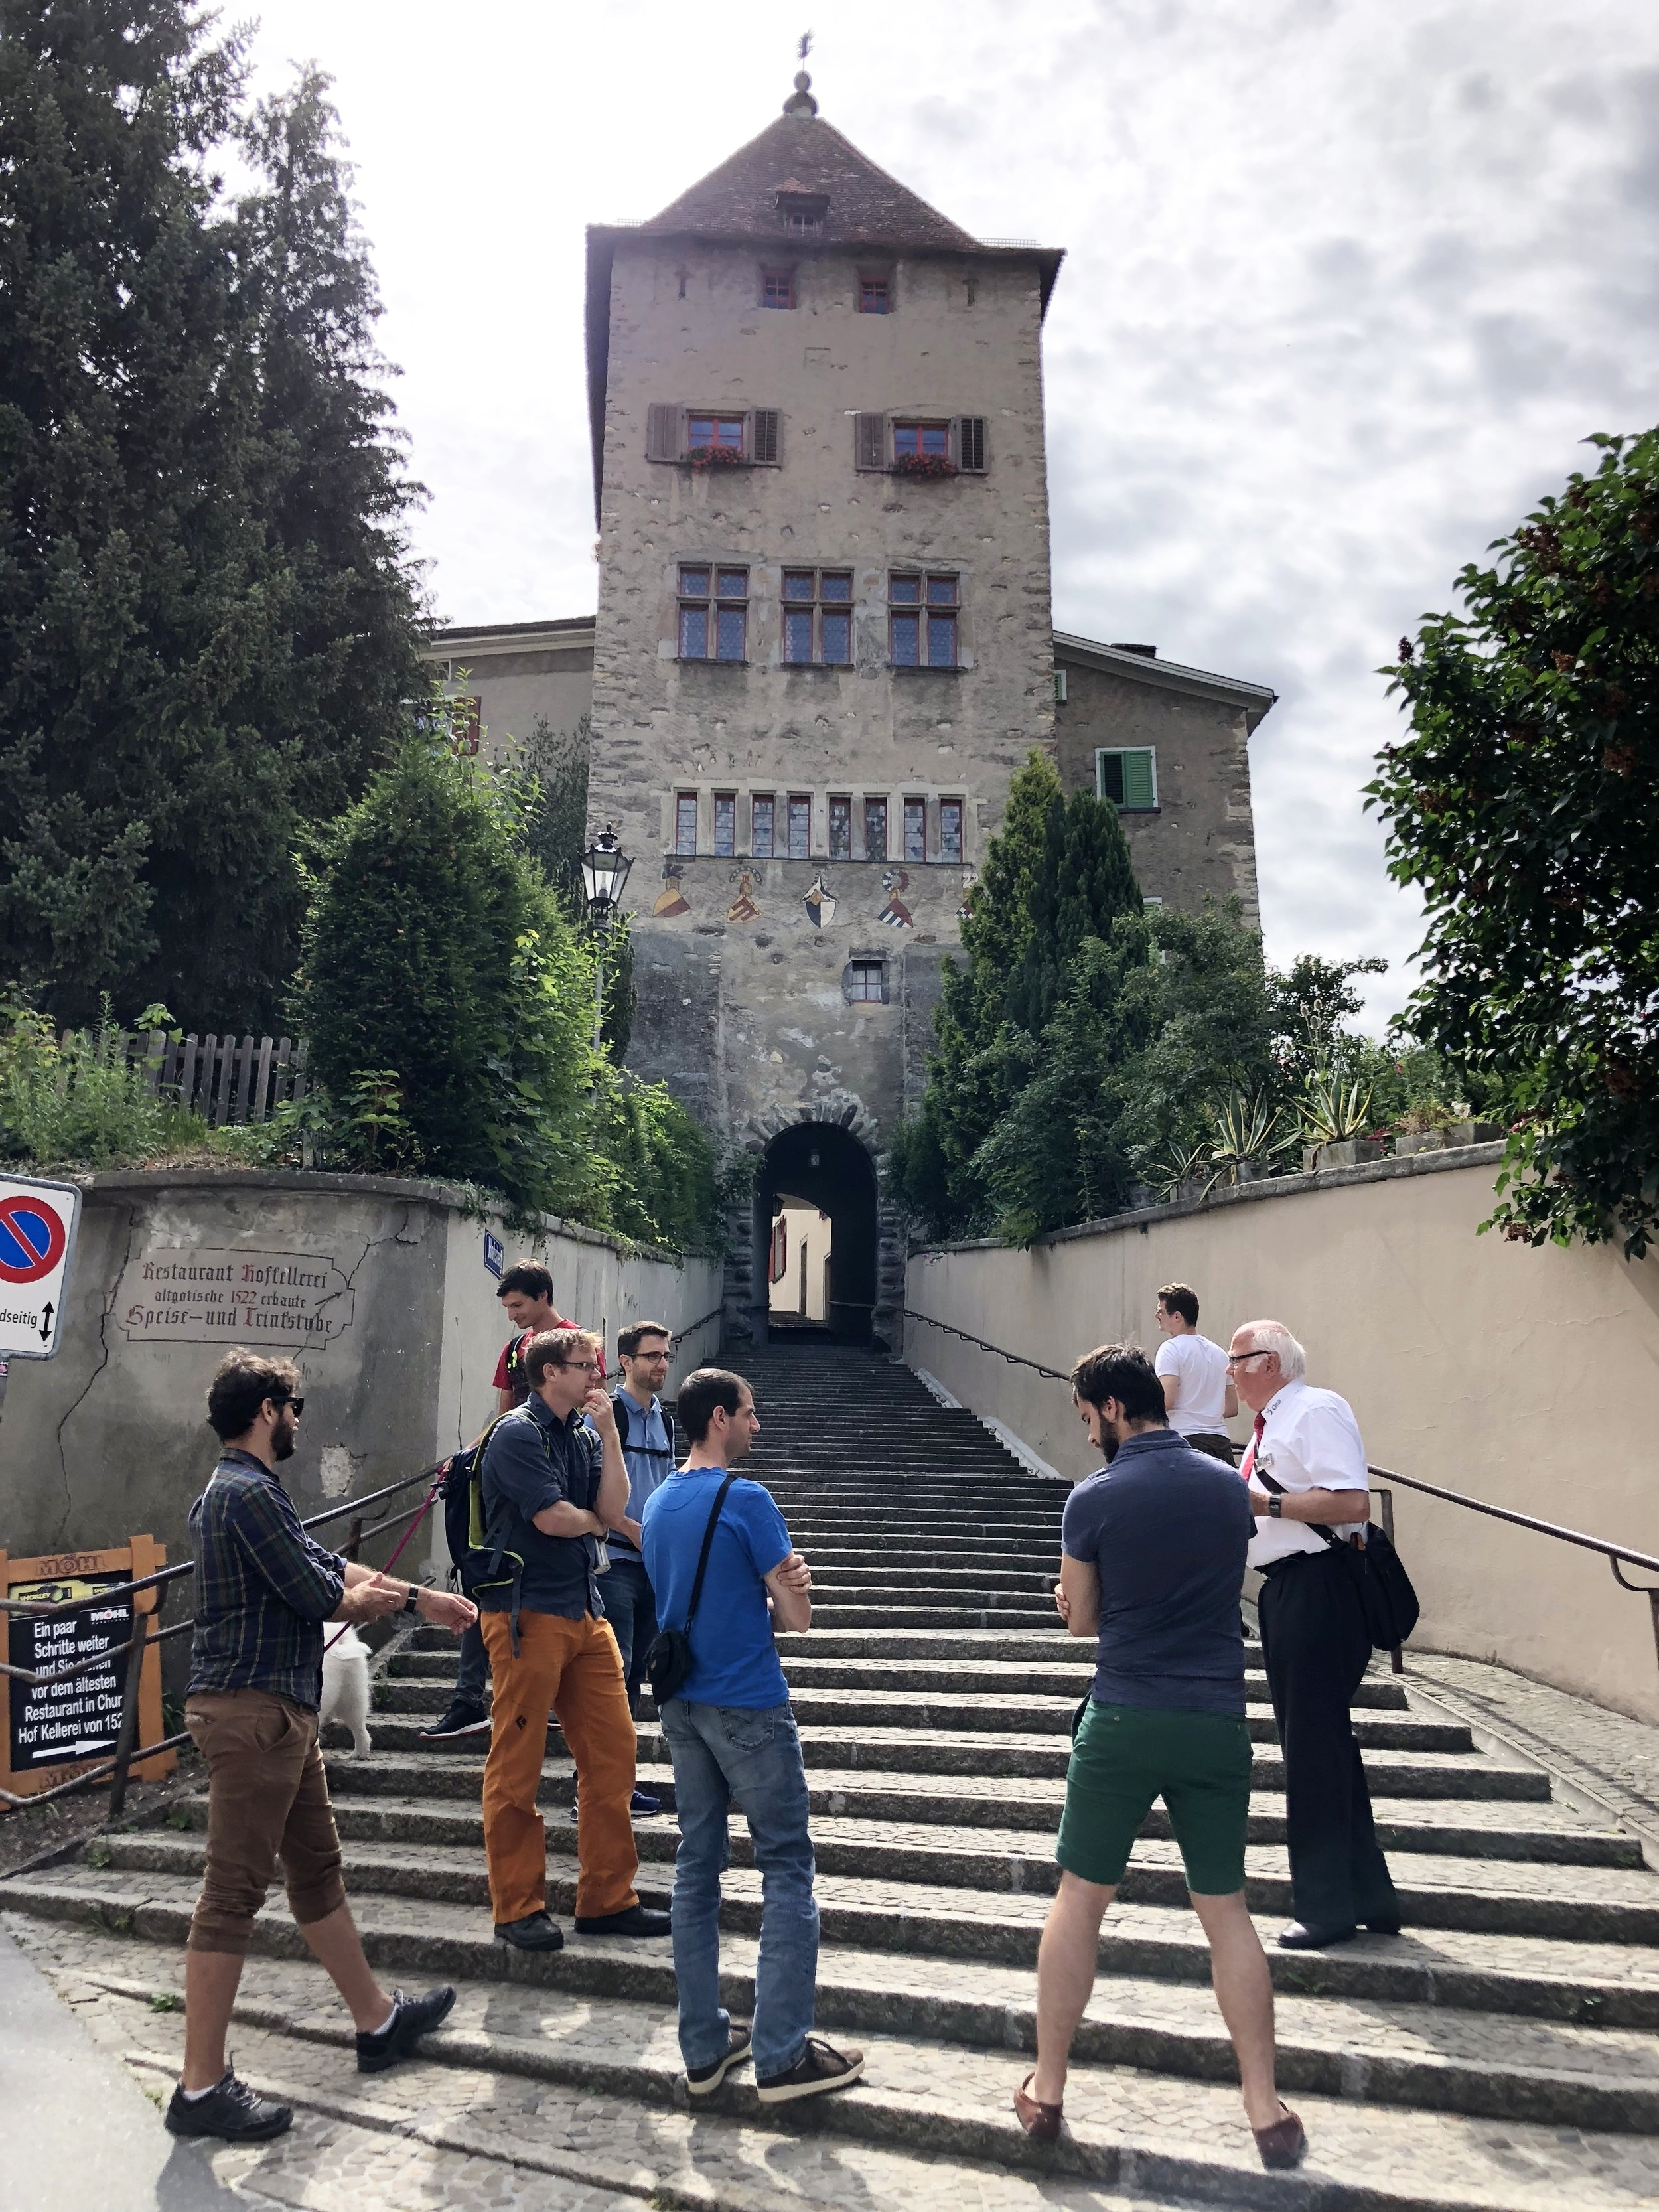 The team begins their team event with a walking tour.